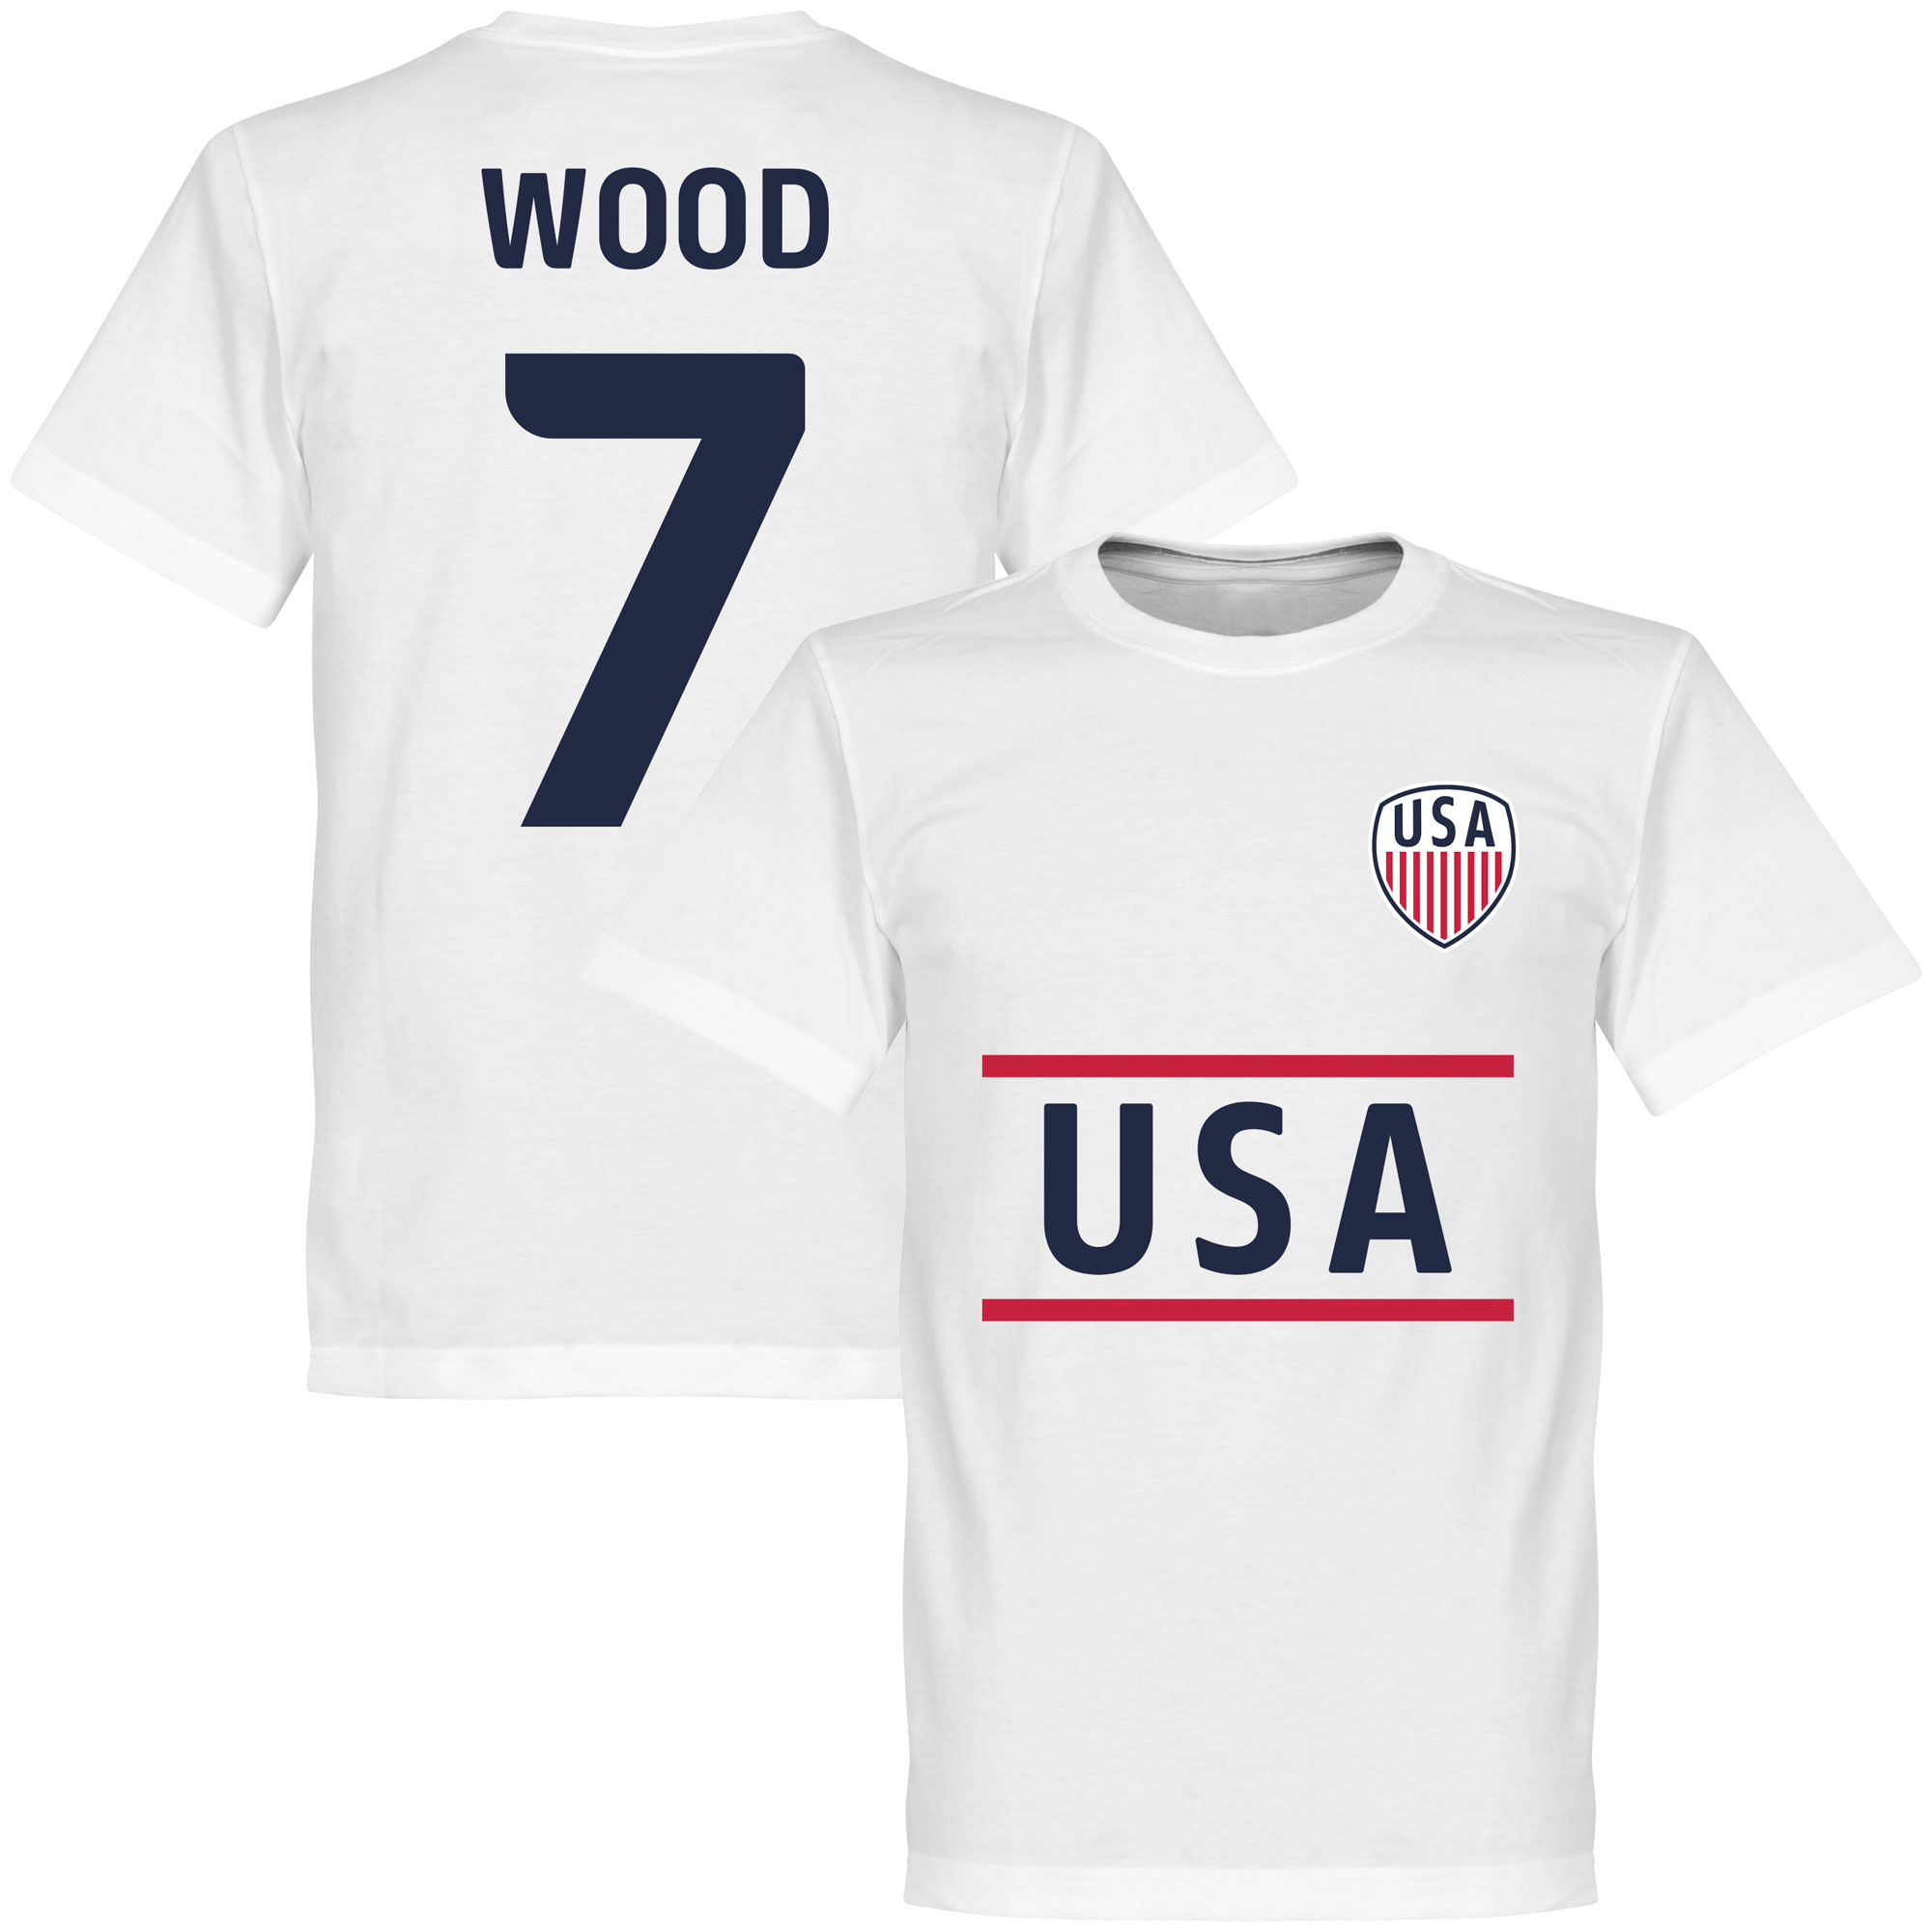 USA Wood 7 Team T-Shirt